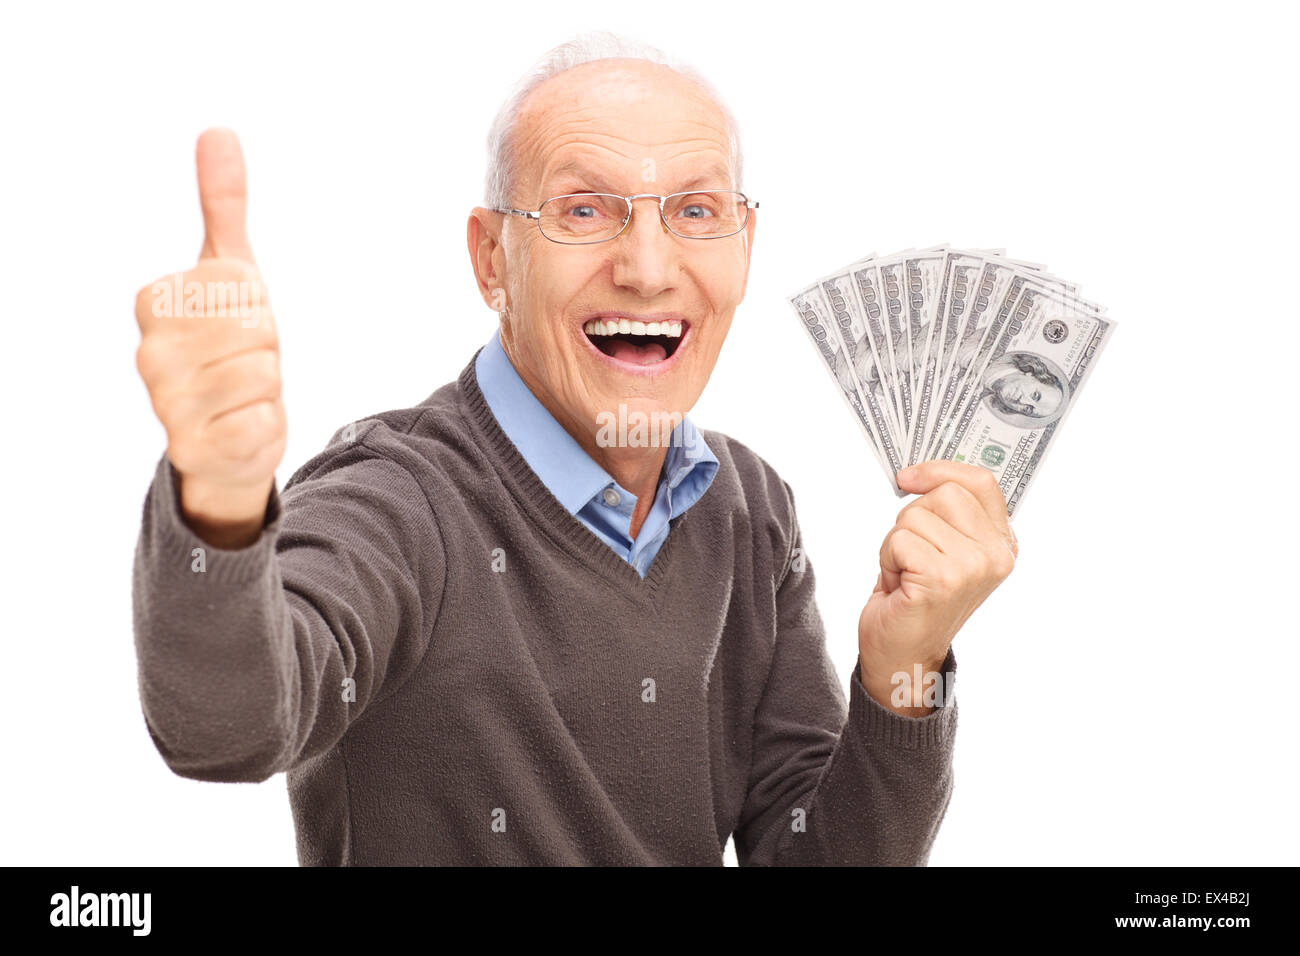 Excited senior gentleman holding a stack of money and giving a thumb up isolated on white background - Stock Image